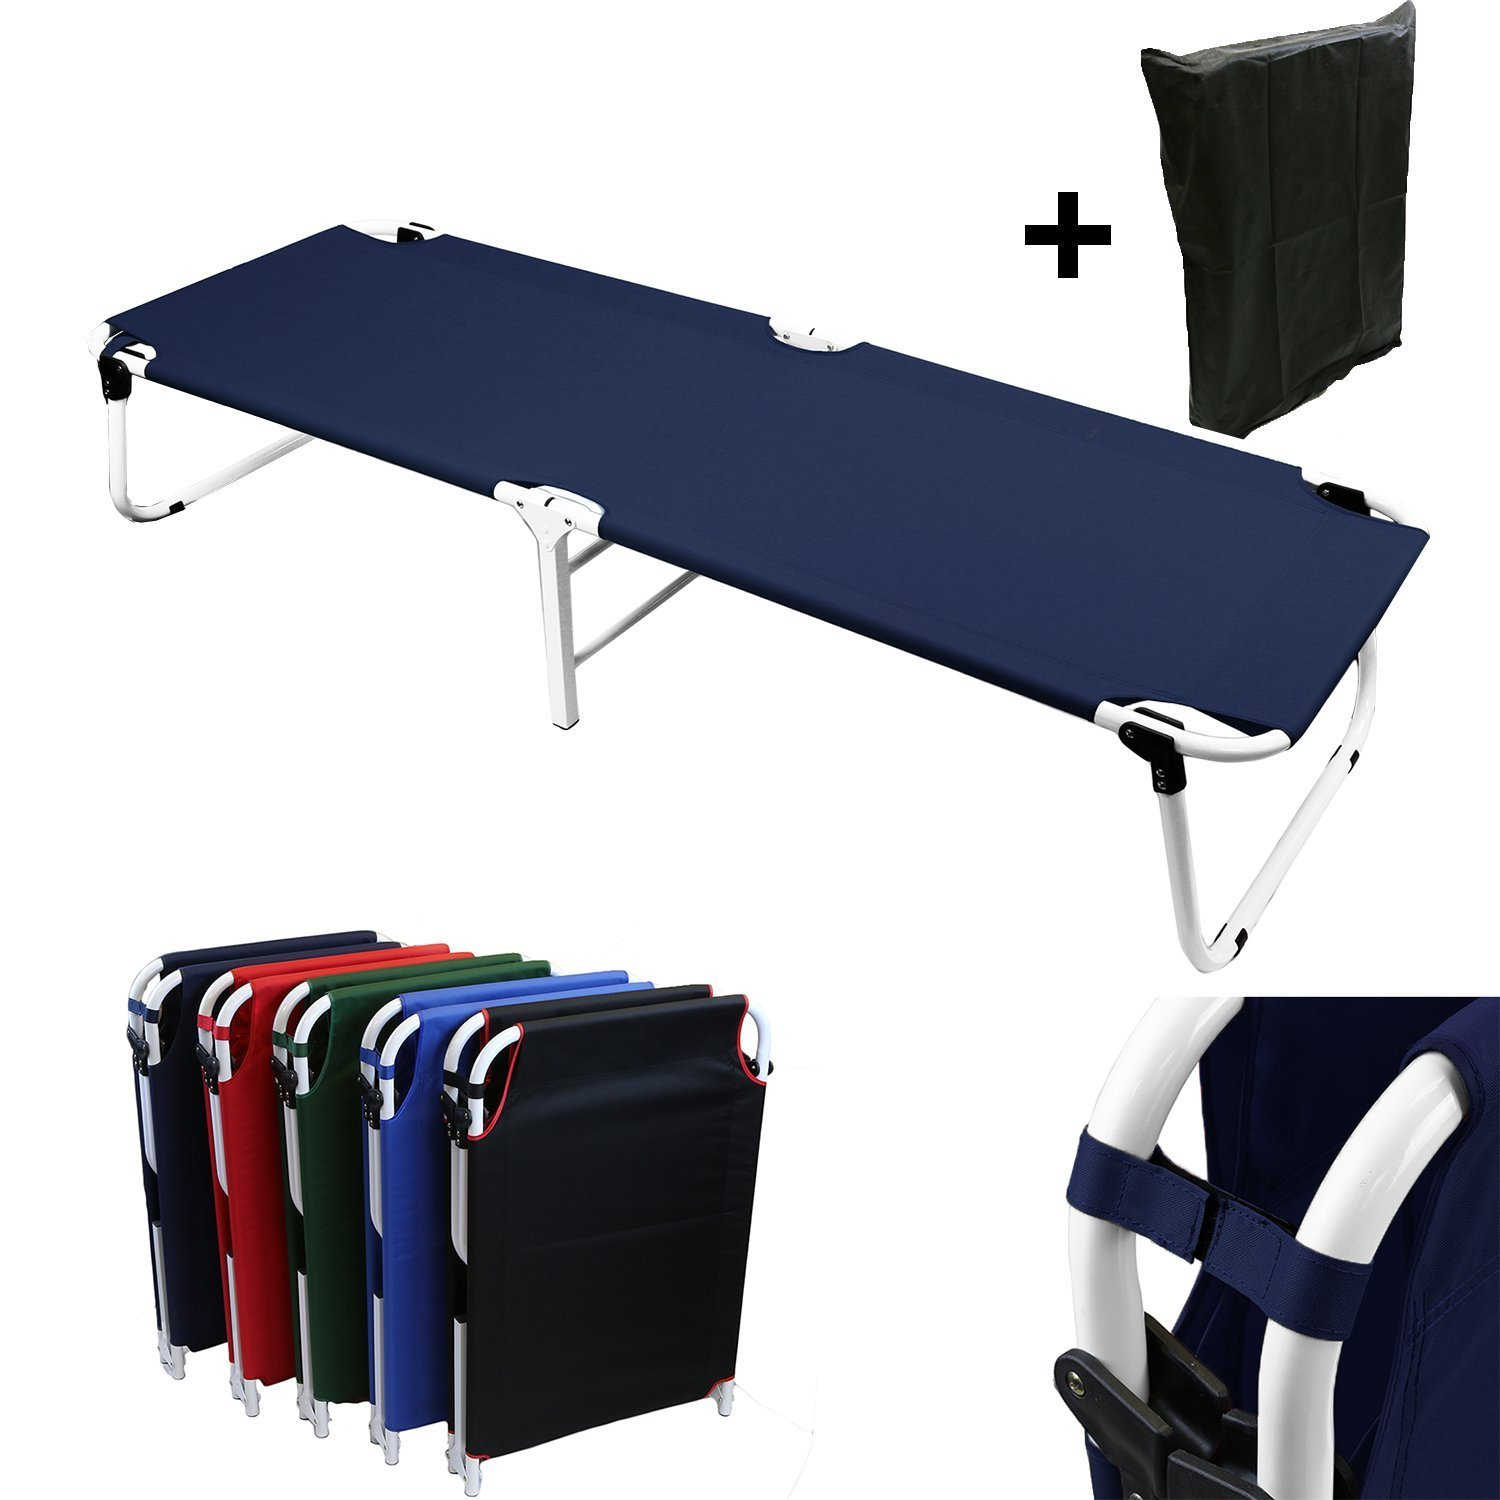 Magshion Portable Military Fold Up Camping Bed Cot + Free Storage Bag Navy Blue